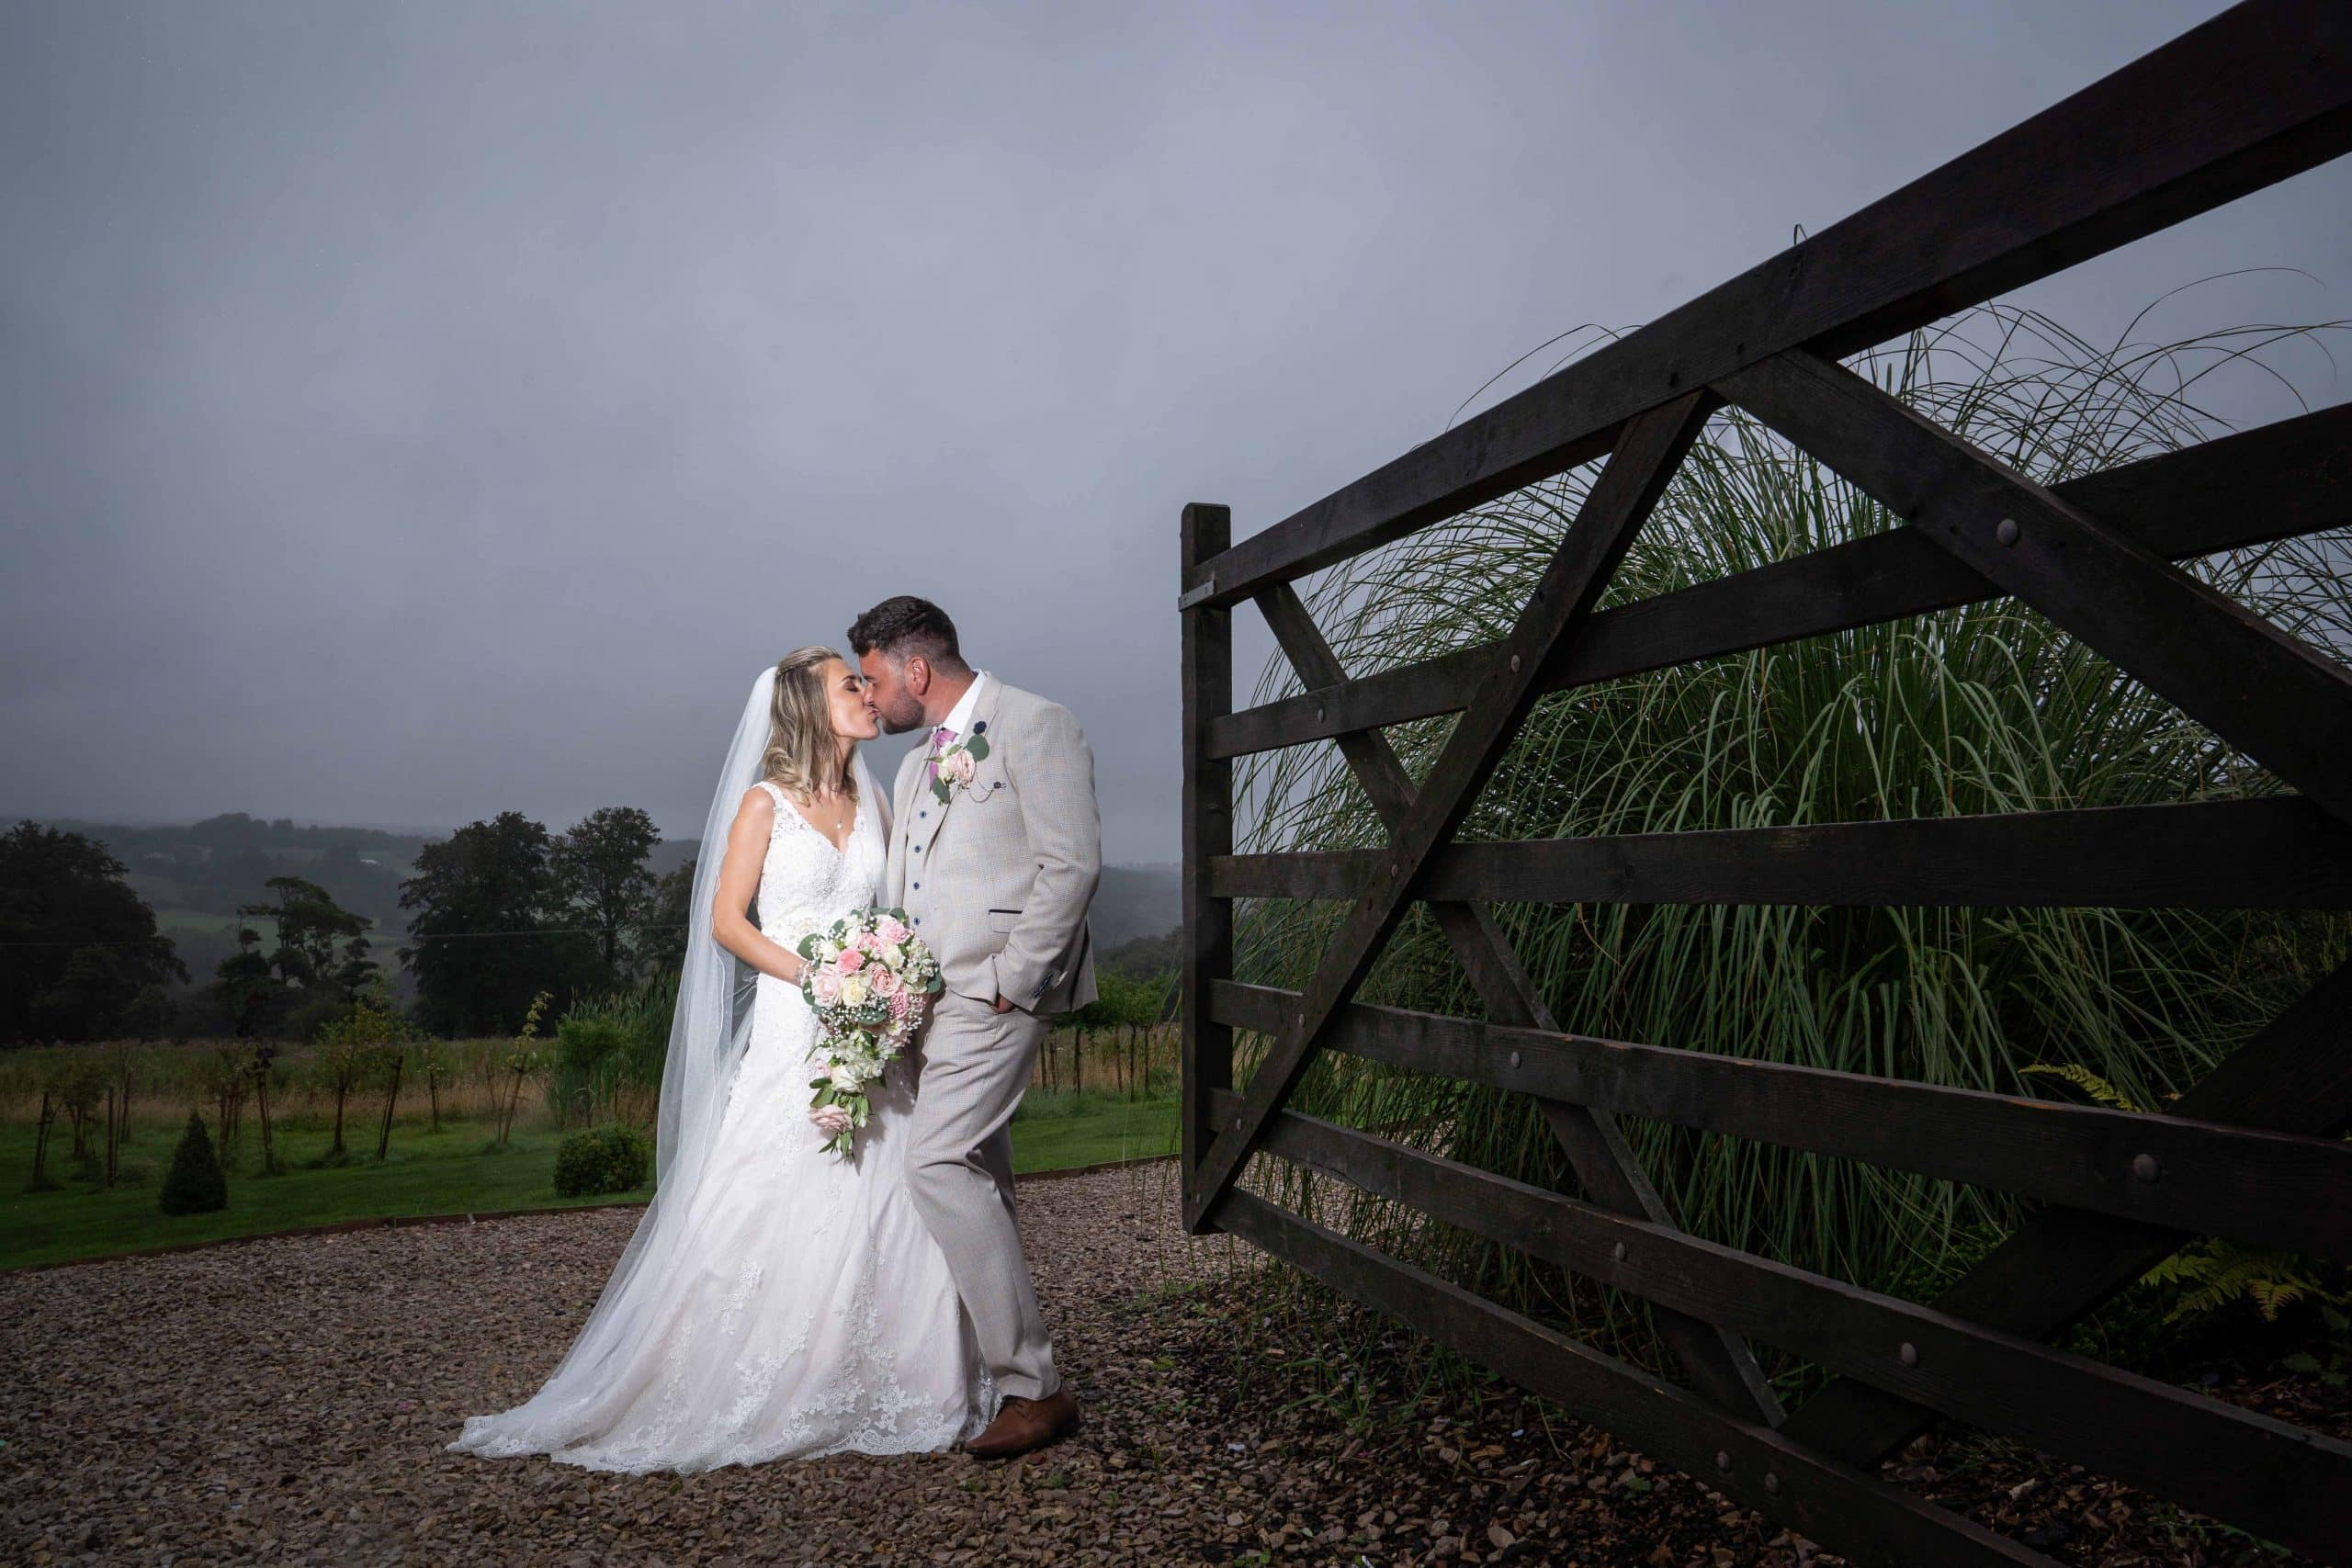 South Causey Inn photography by Teardrop Photography